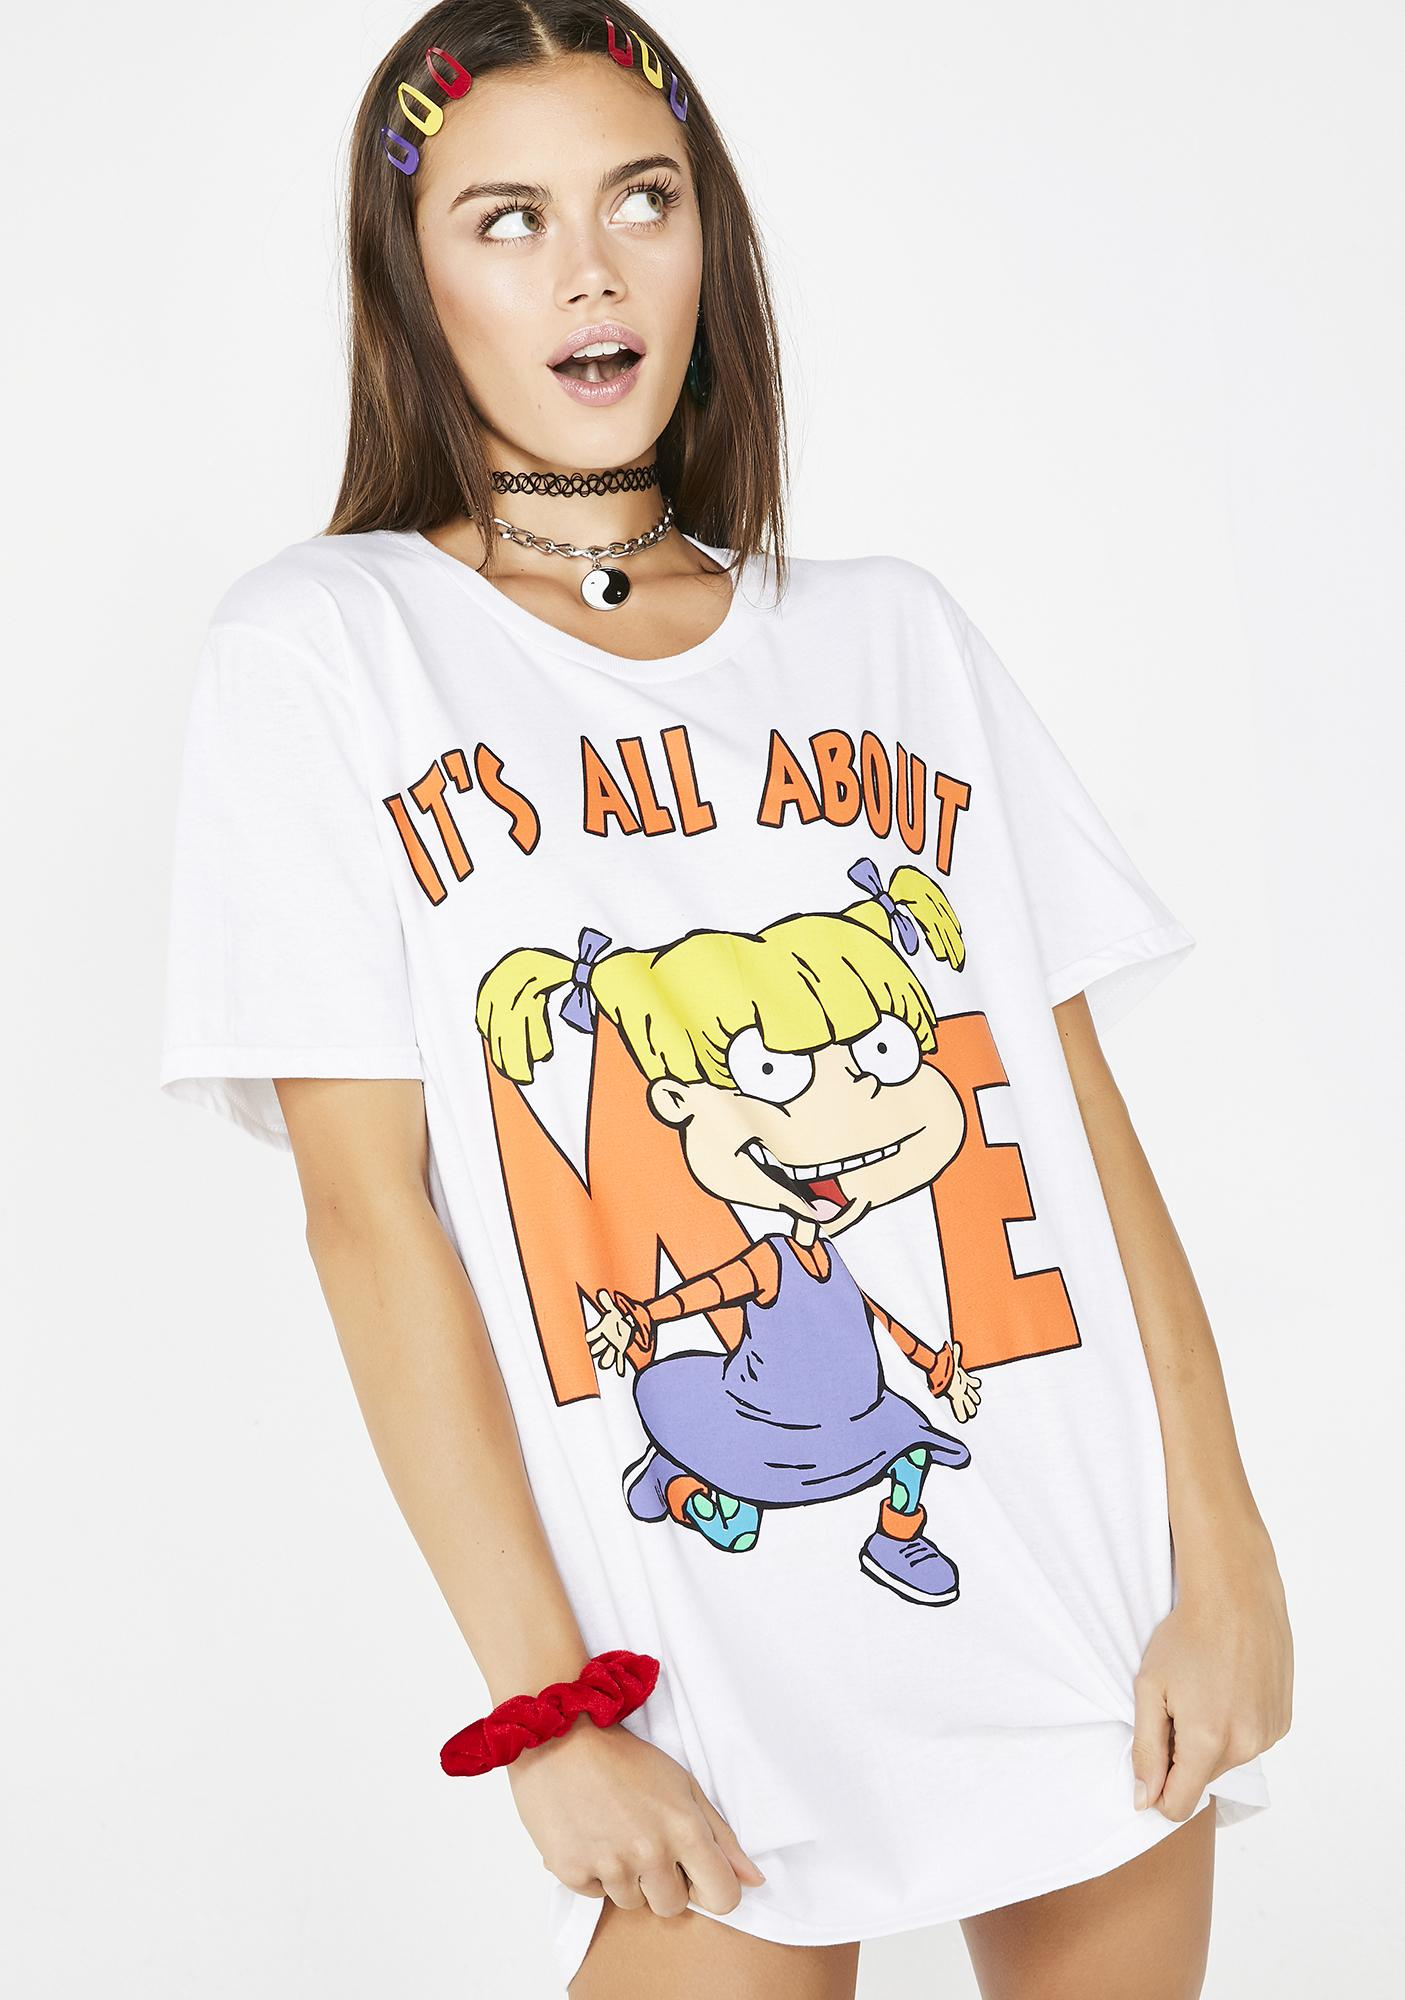 All About Me Graphic Tee